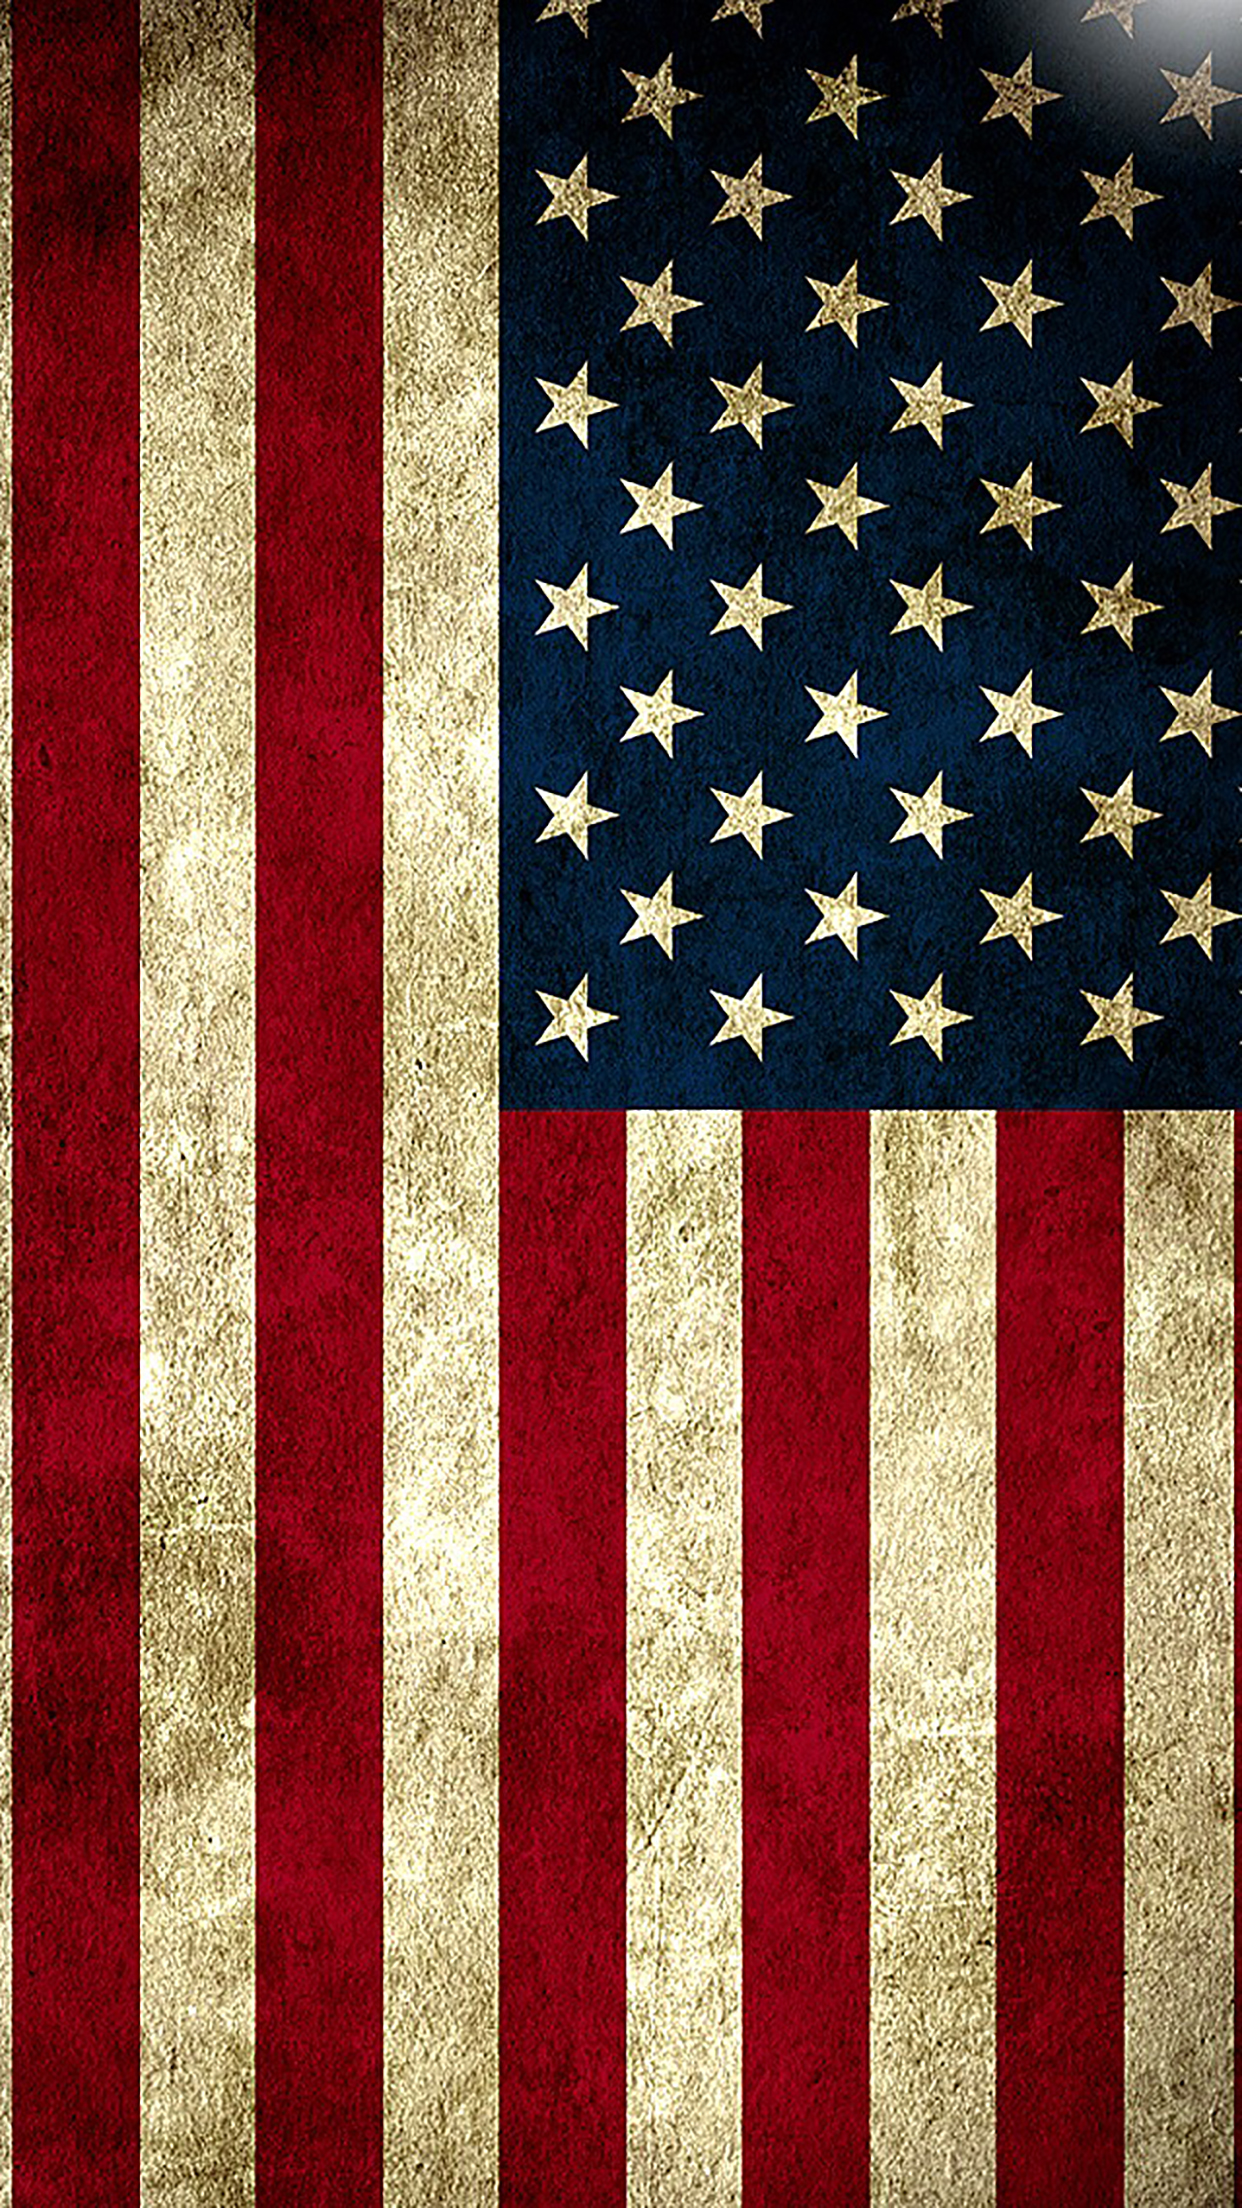 American Flag 3 3Wallpapers iPhone Parallax American Flag : 3